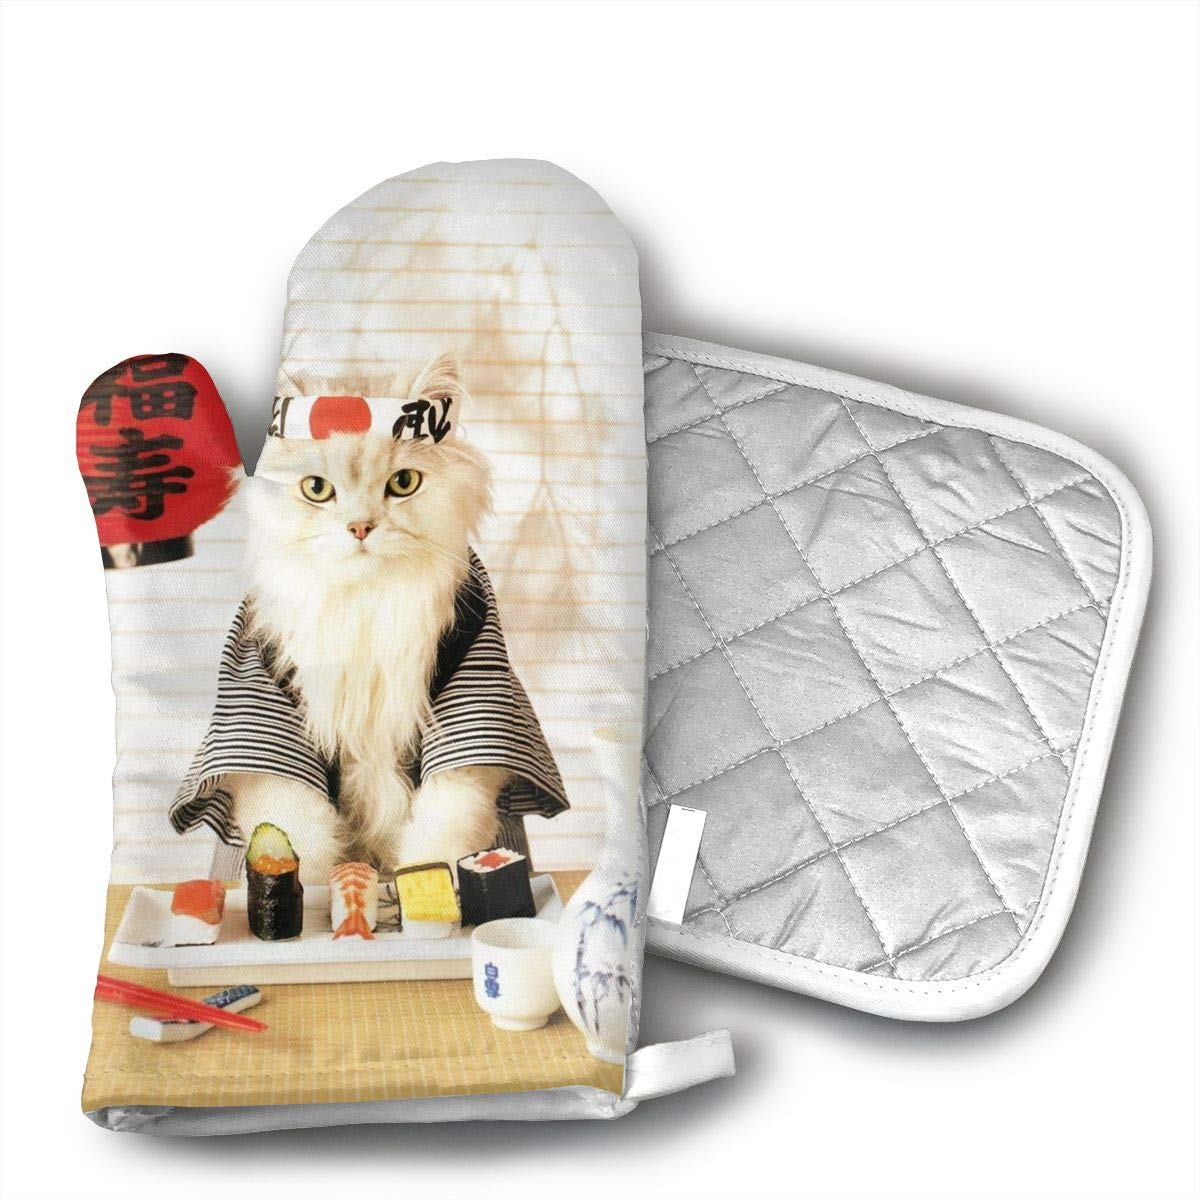 JFNNRUOP Sushi Cat Japanese Cute Funny Kitten Oven Mitts,with Potholders Oven Gloves,Insulated Quilted Cotton Potholders